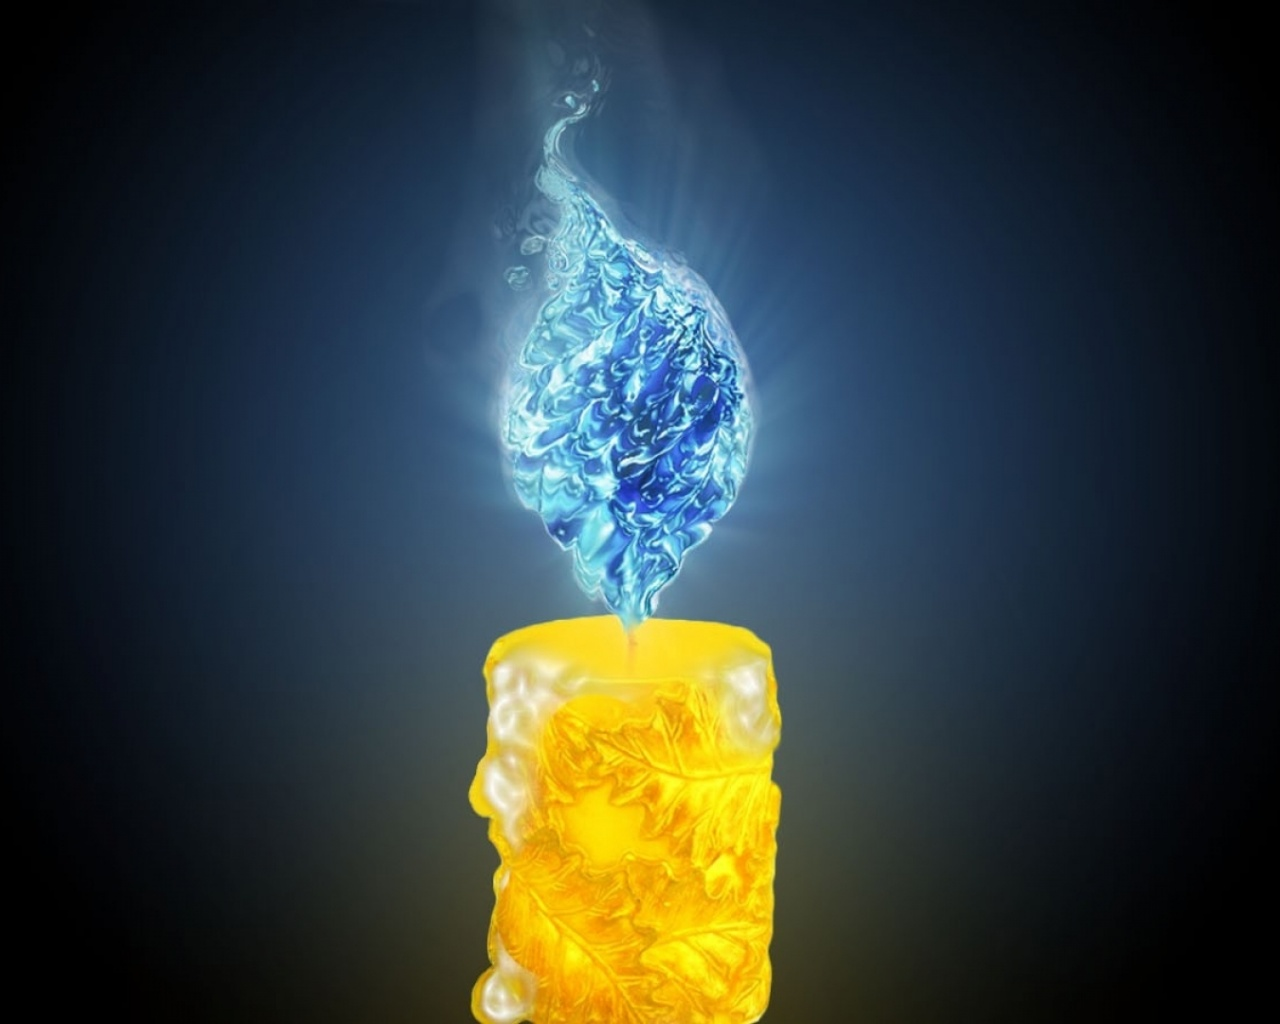 1280x1024 Yellow Candle Blue Flame Desktop PC And Mac Wallpaper